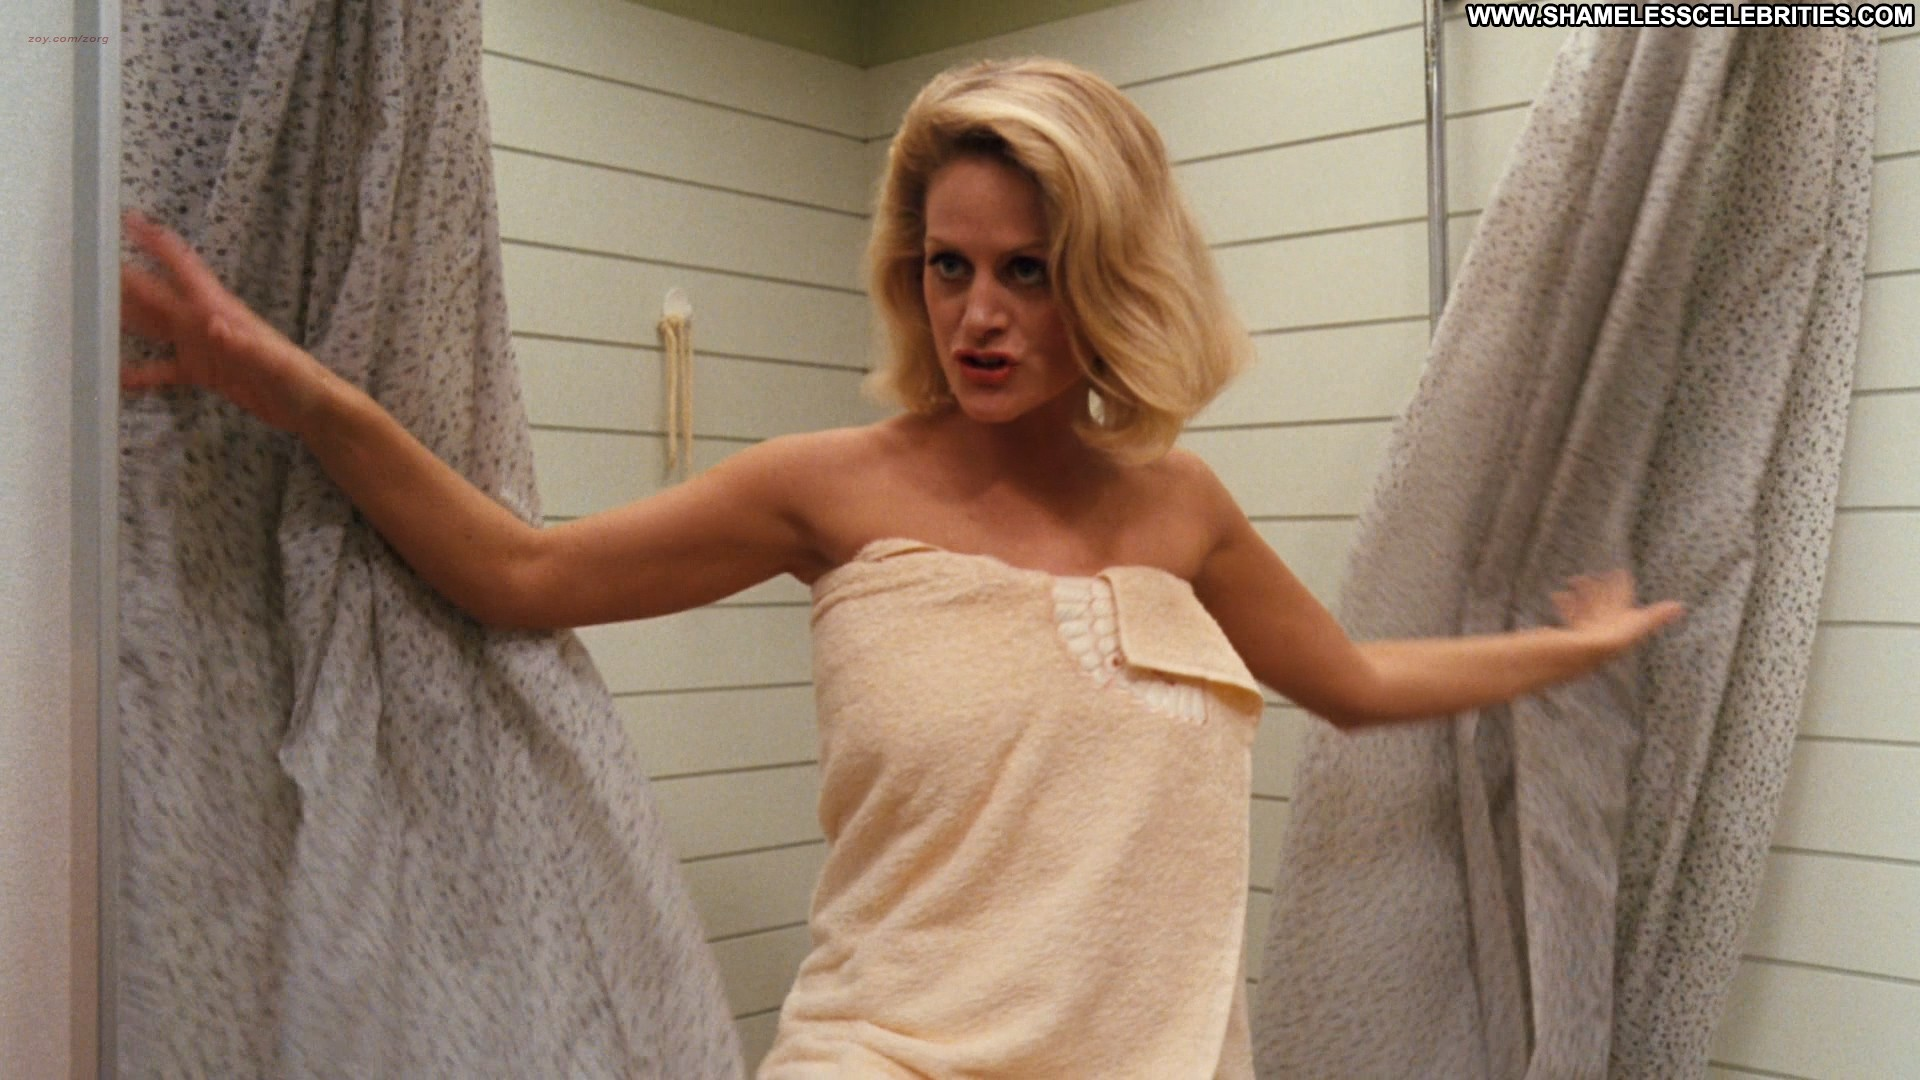 Nice claudia neidig nude european vacation national lampoon seems excellent